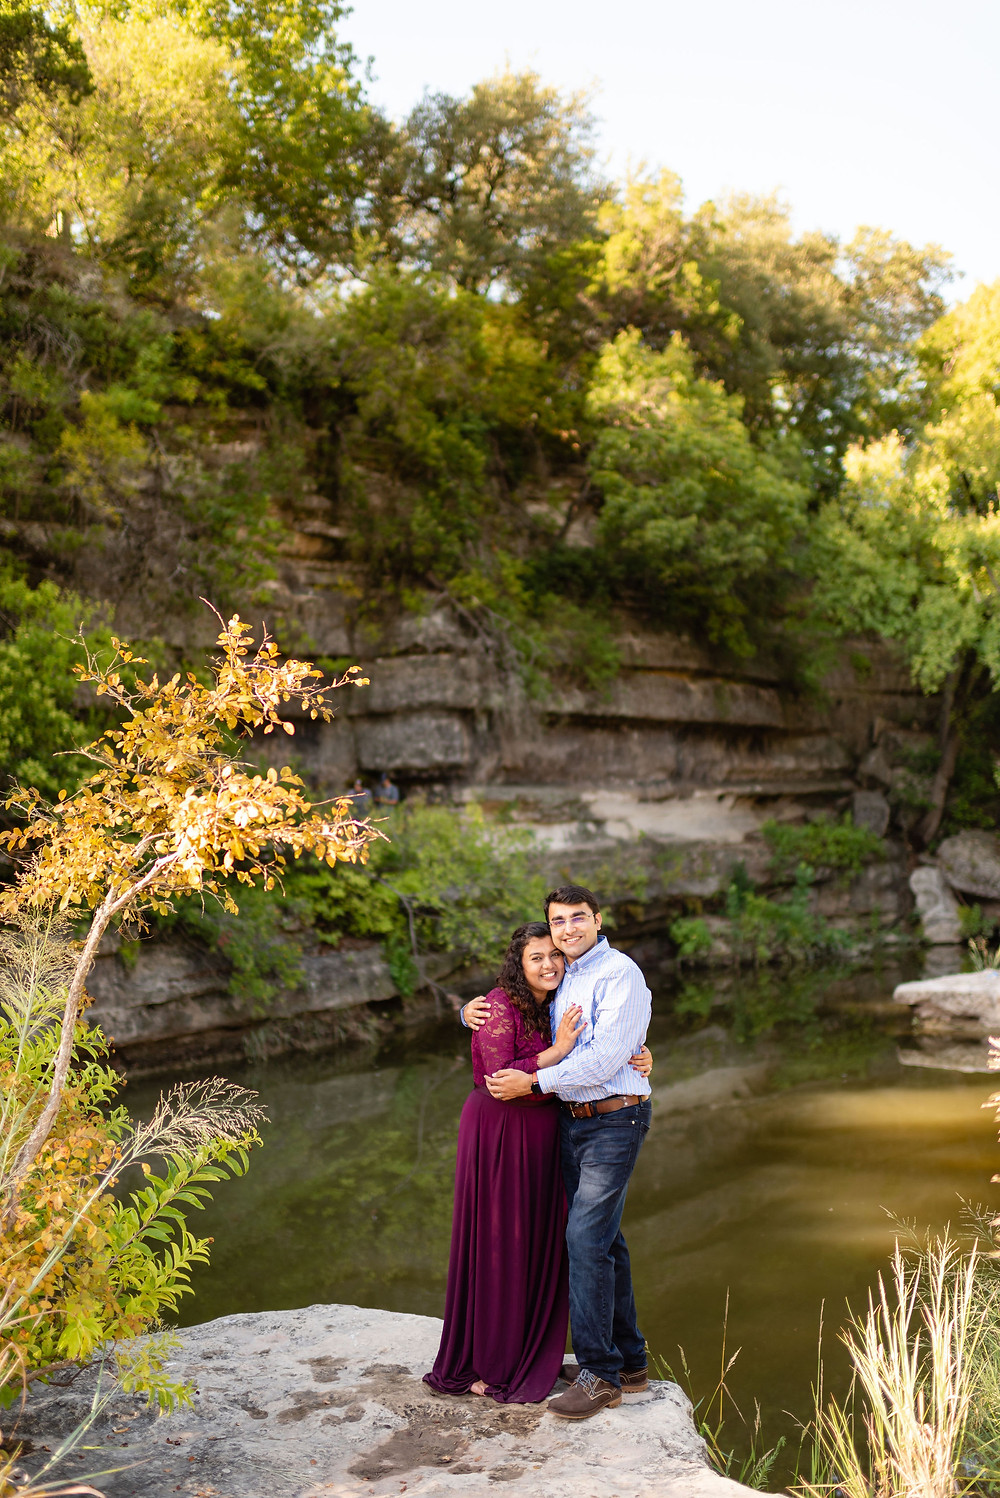 adventurous landscape in austin at bull creek. girl and guy smile at camera at edge of water with large rockwall behind them